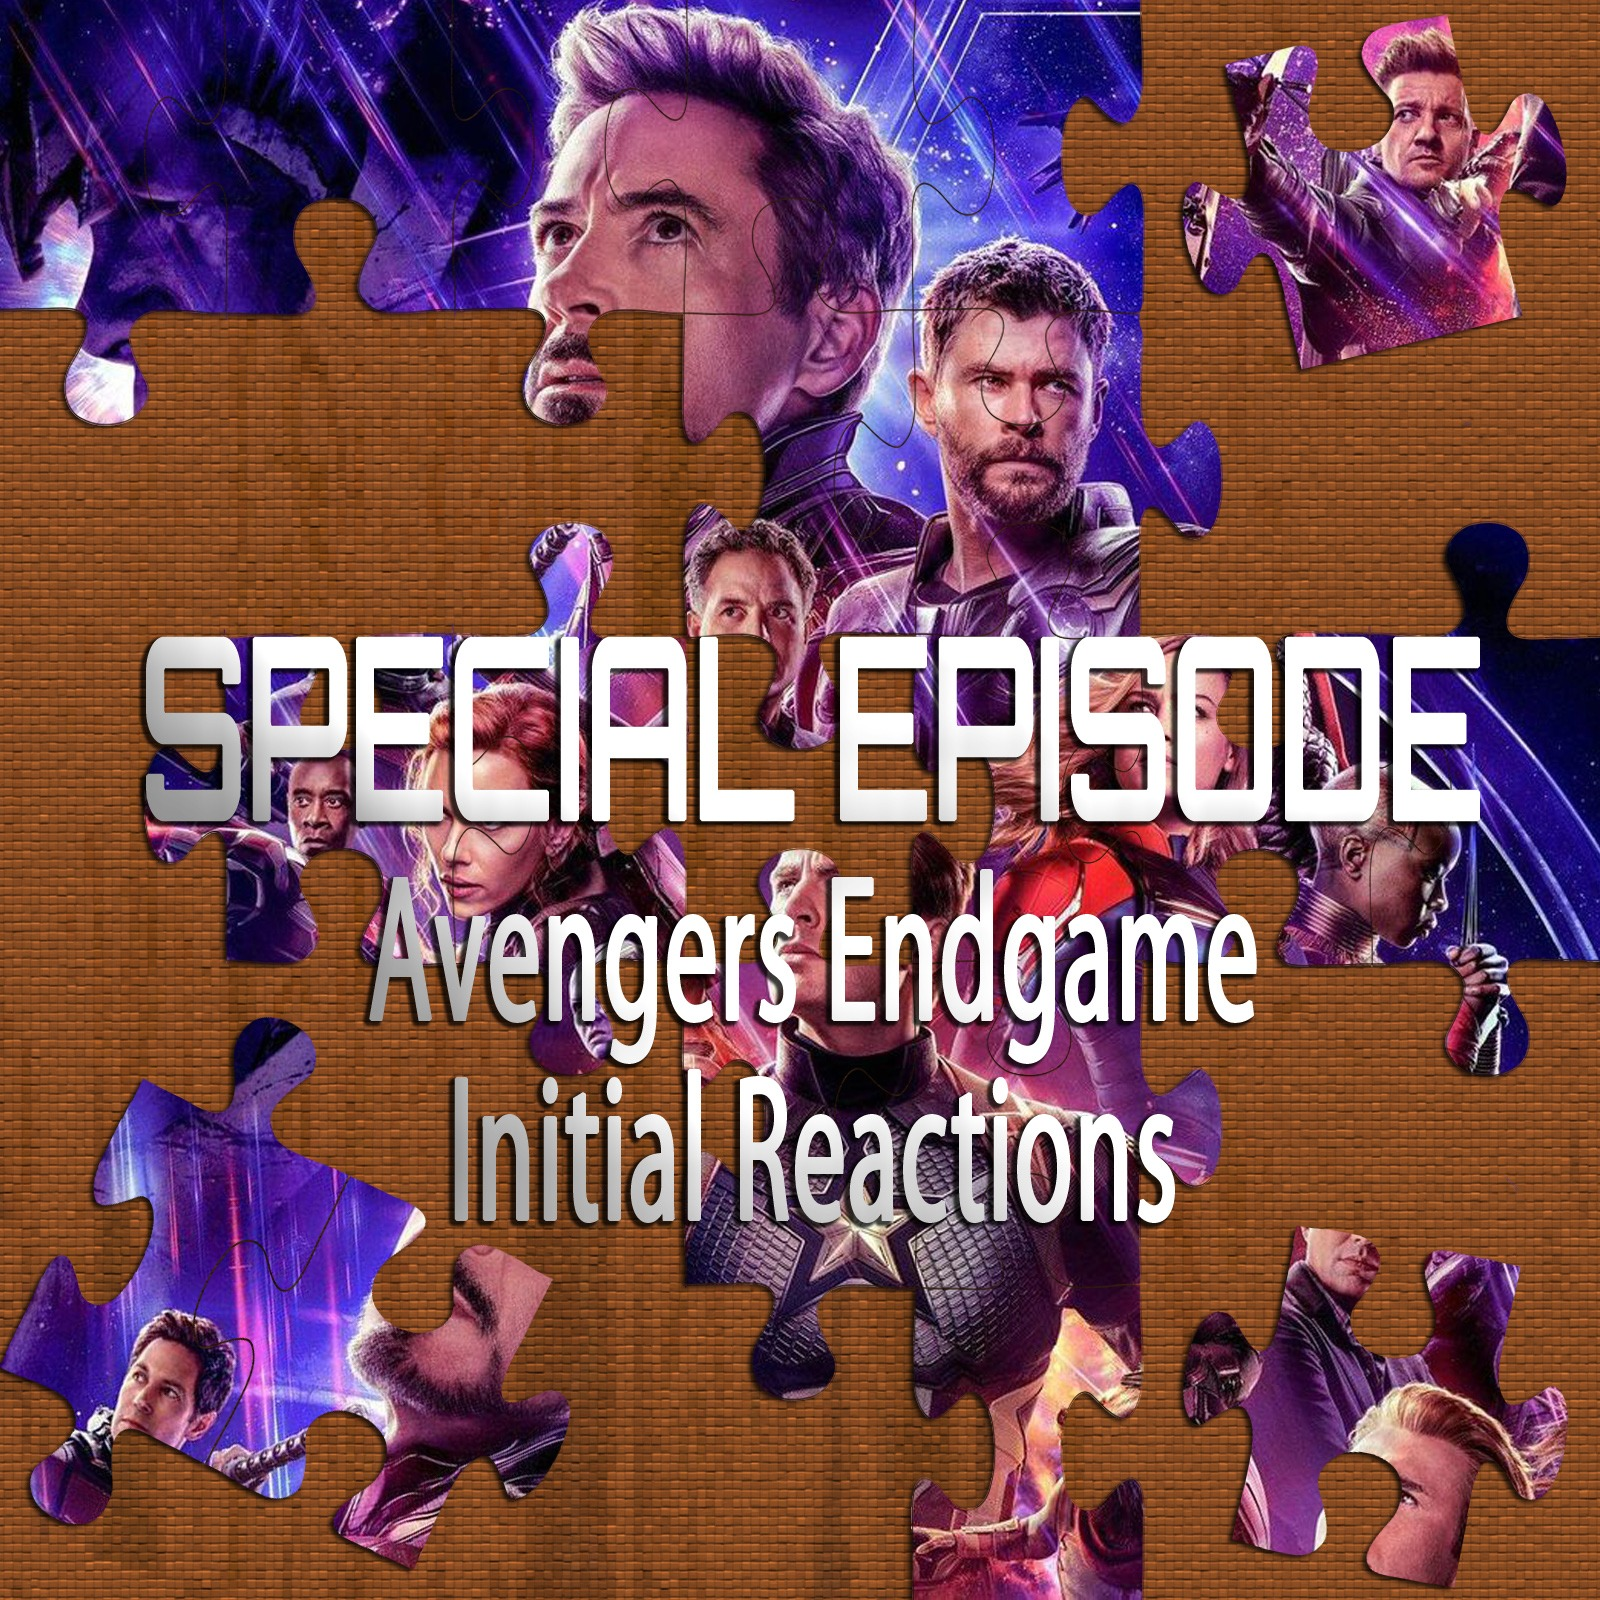 Avengers Endgame – Initial Reactions (Special Episode)